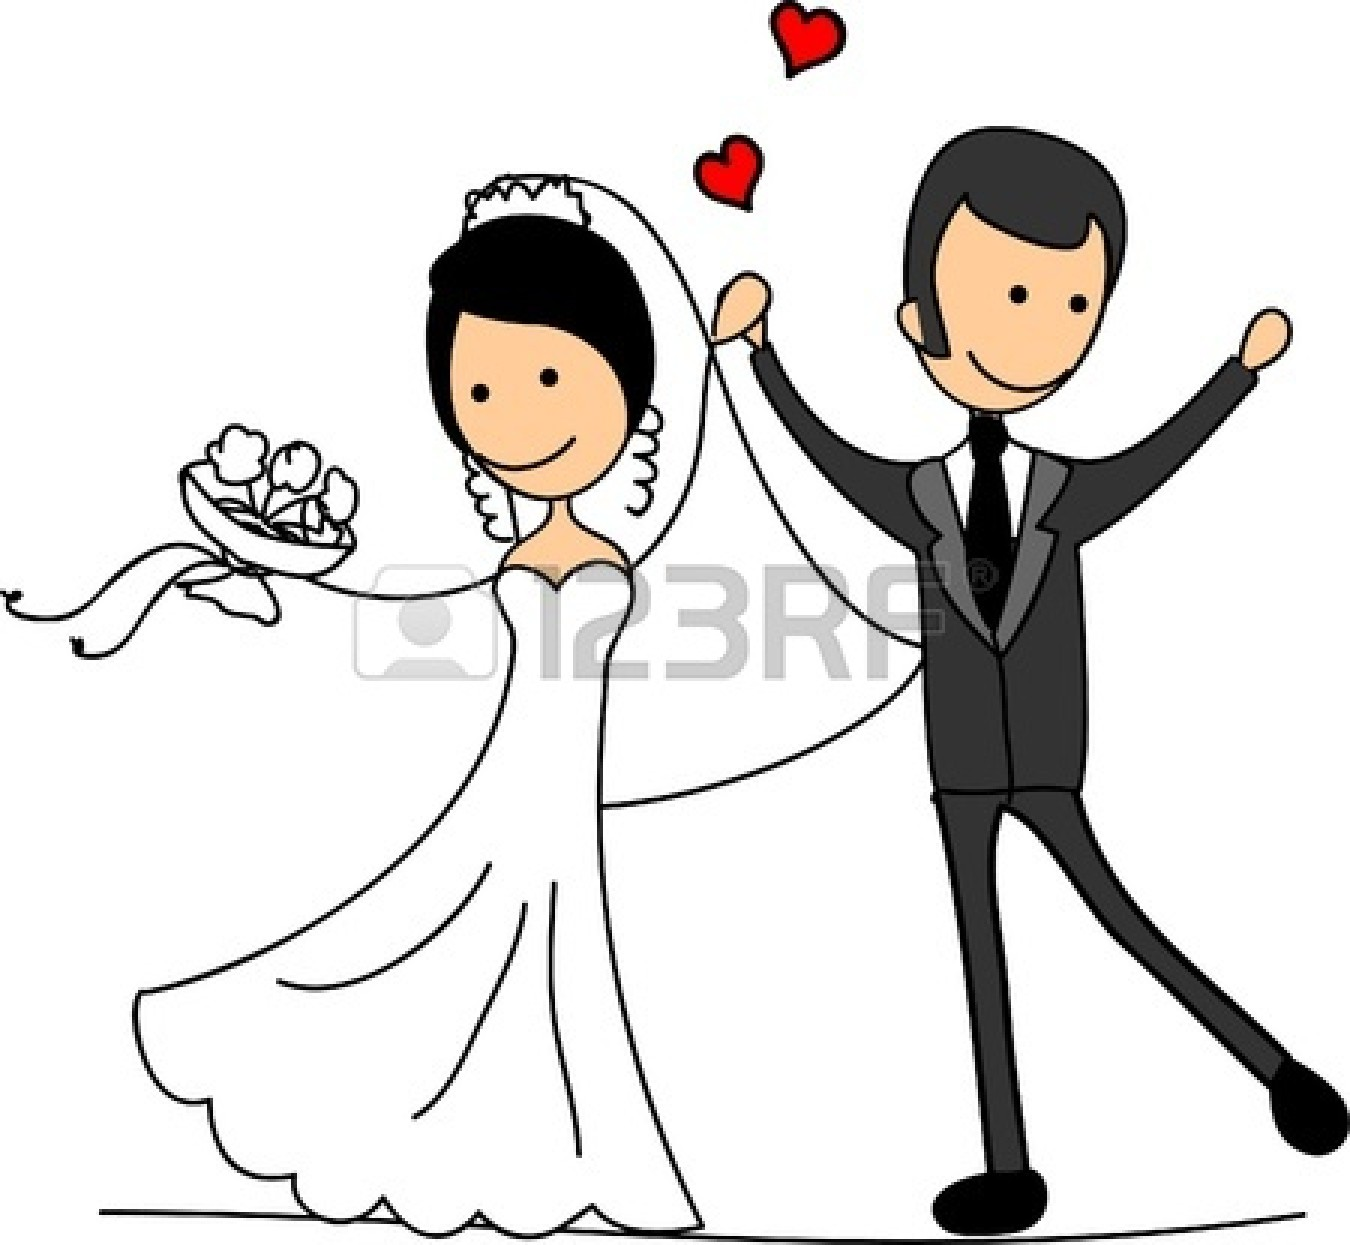 Country clipart bride and groom Groom And bride%20and%20groom%20clipart%20black%20and%20white  Black